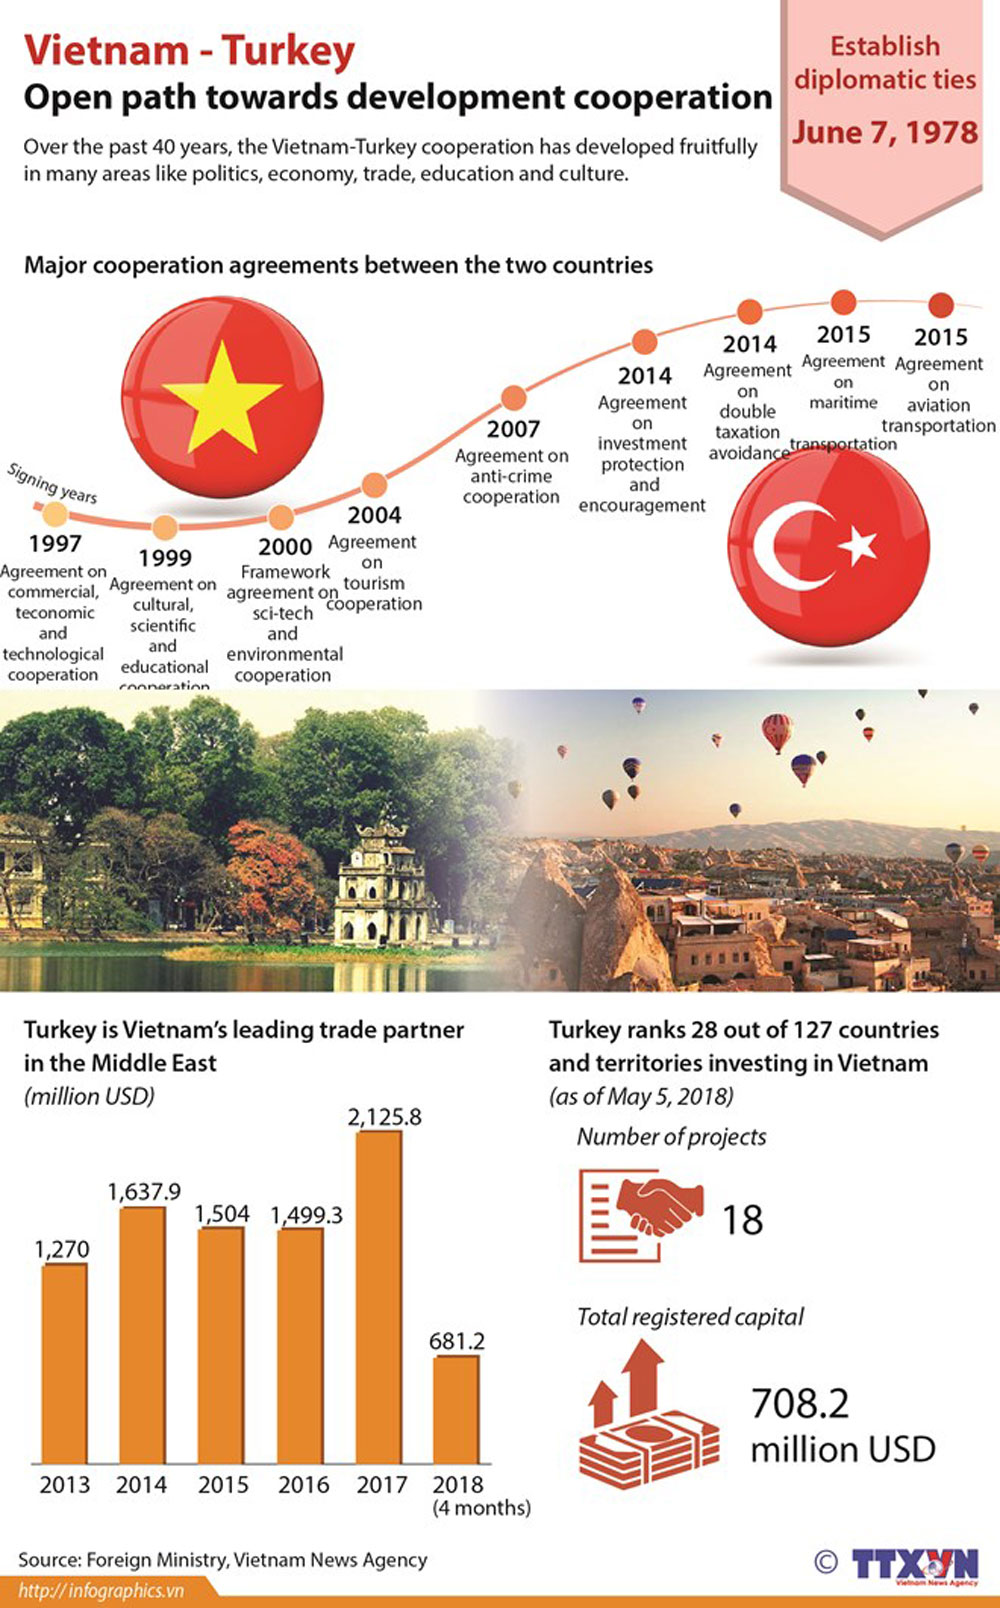 Vietnam-Turkey, development cooperation, fruitful development, foreign affair